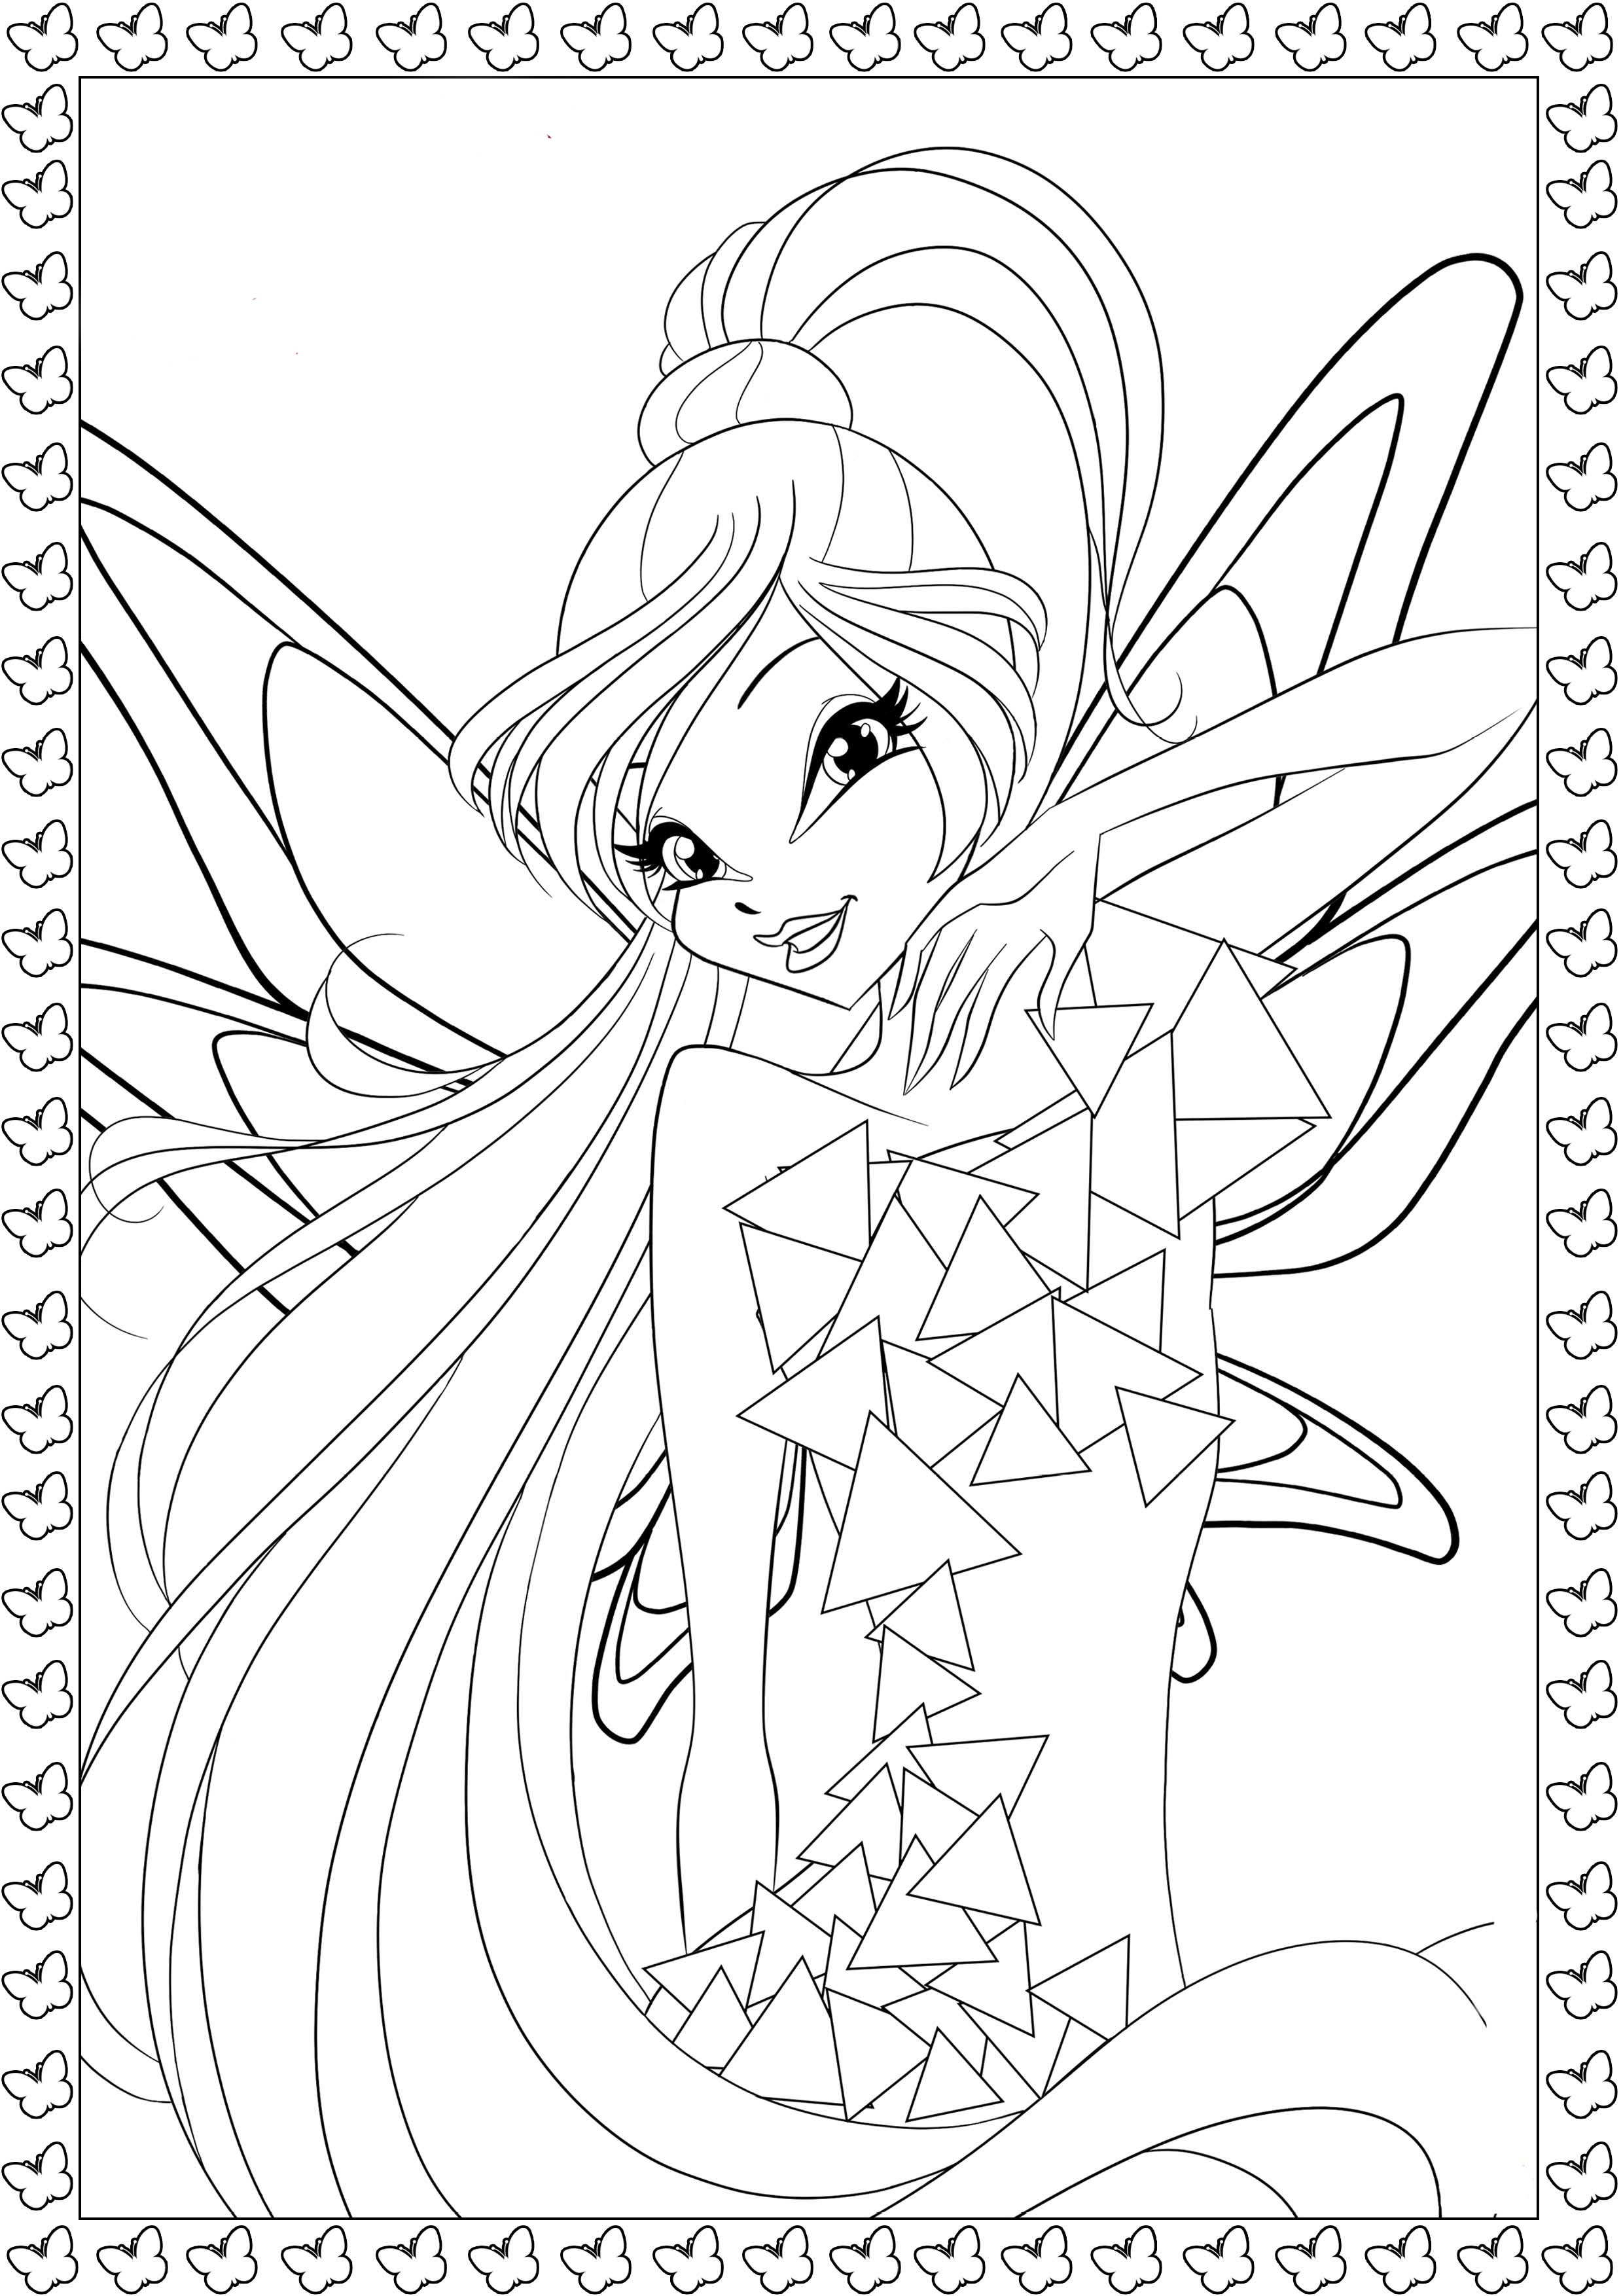 winx coloring page winx club coloring pages kidsuki page coloring winx